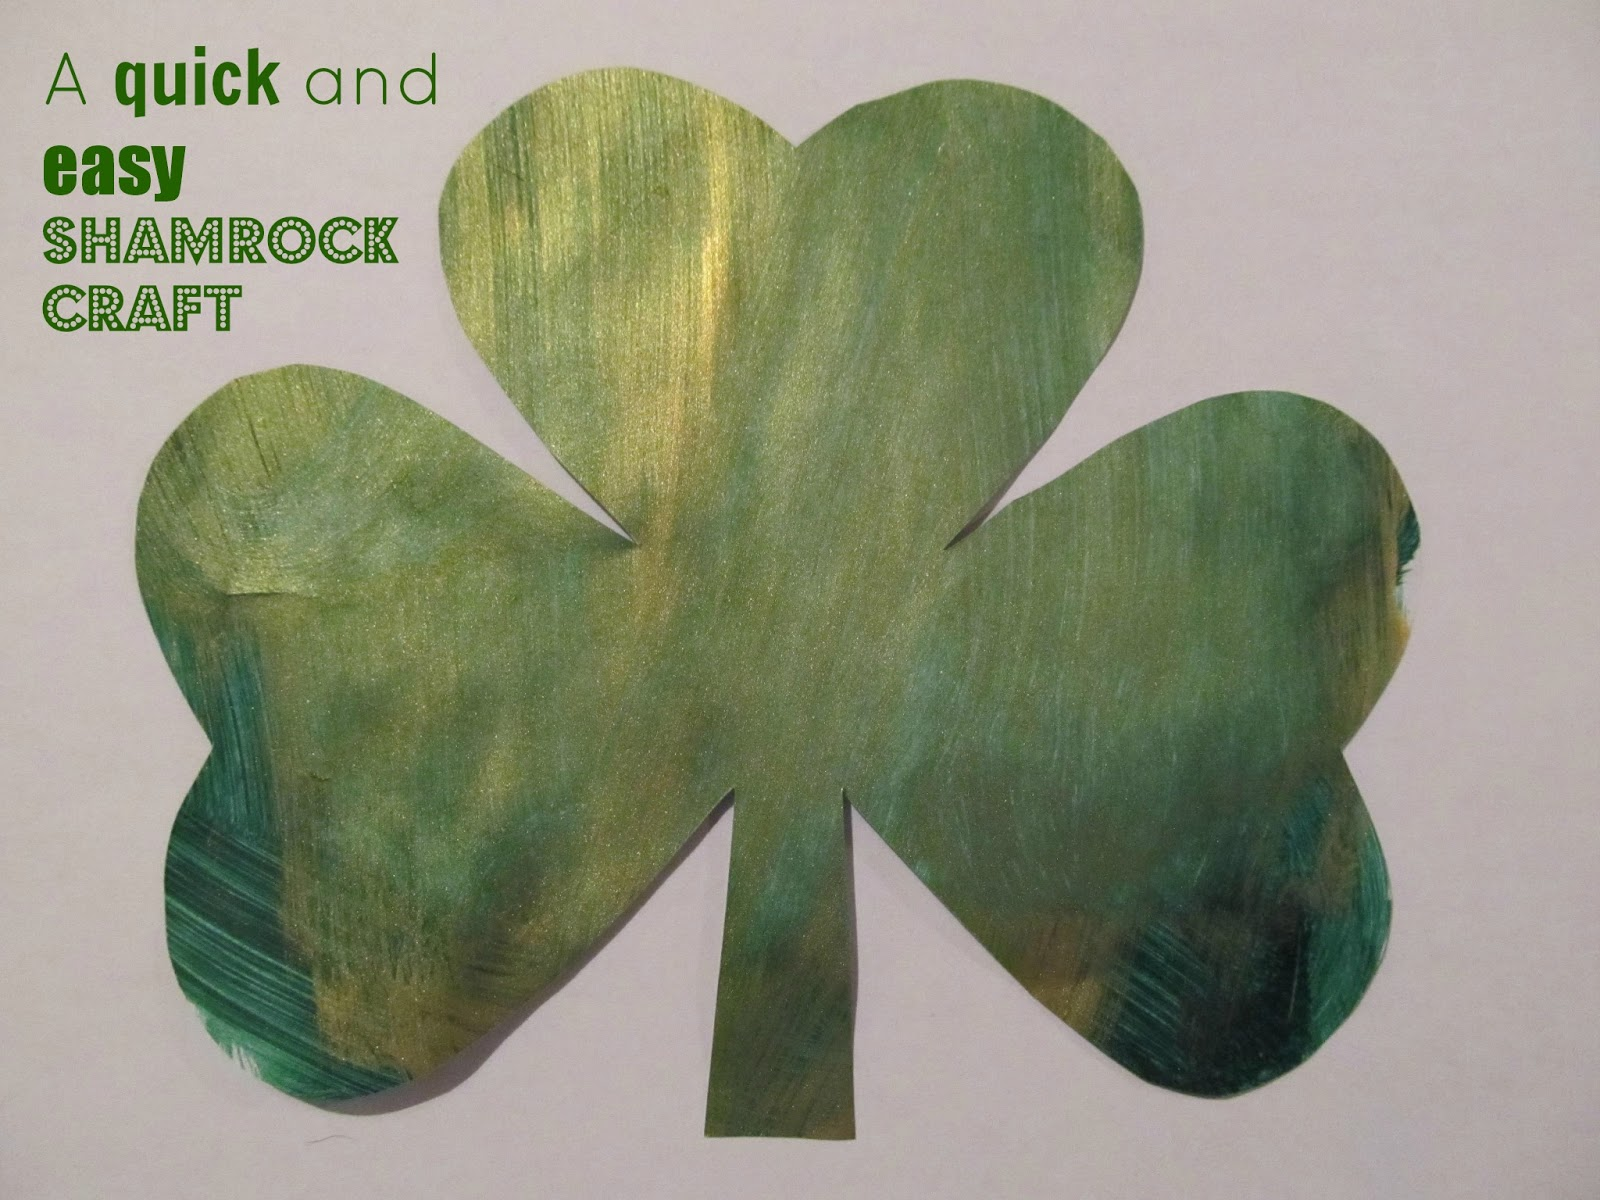 tot school tuesday) 10 kid-friendly st. patrick's day activities